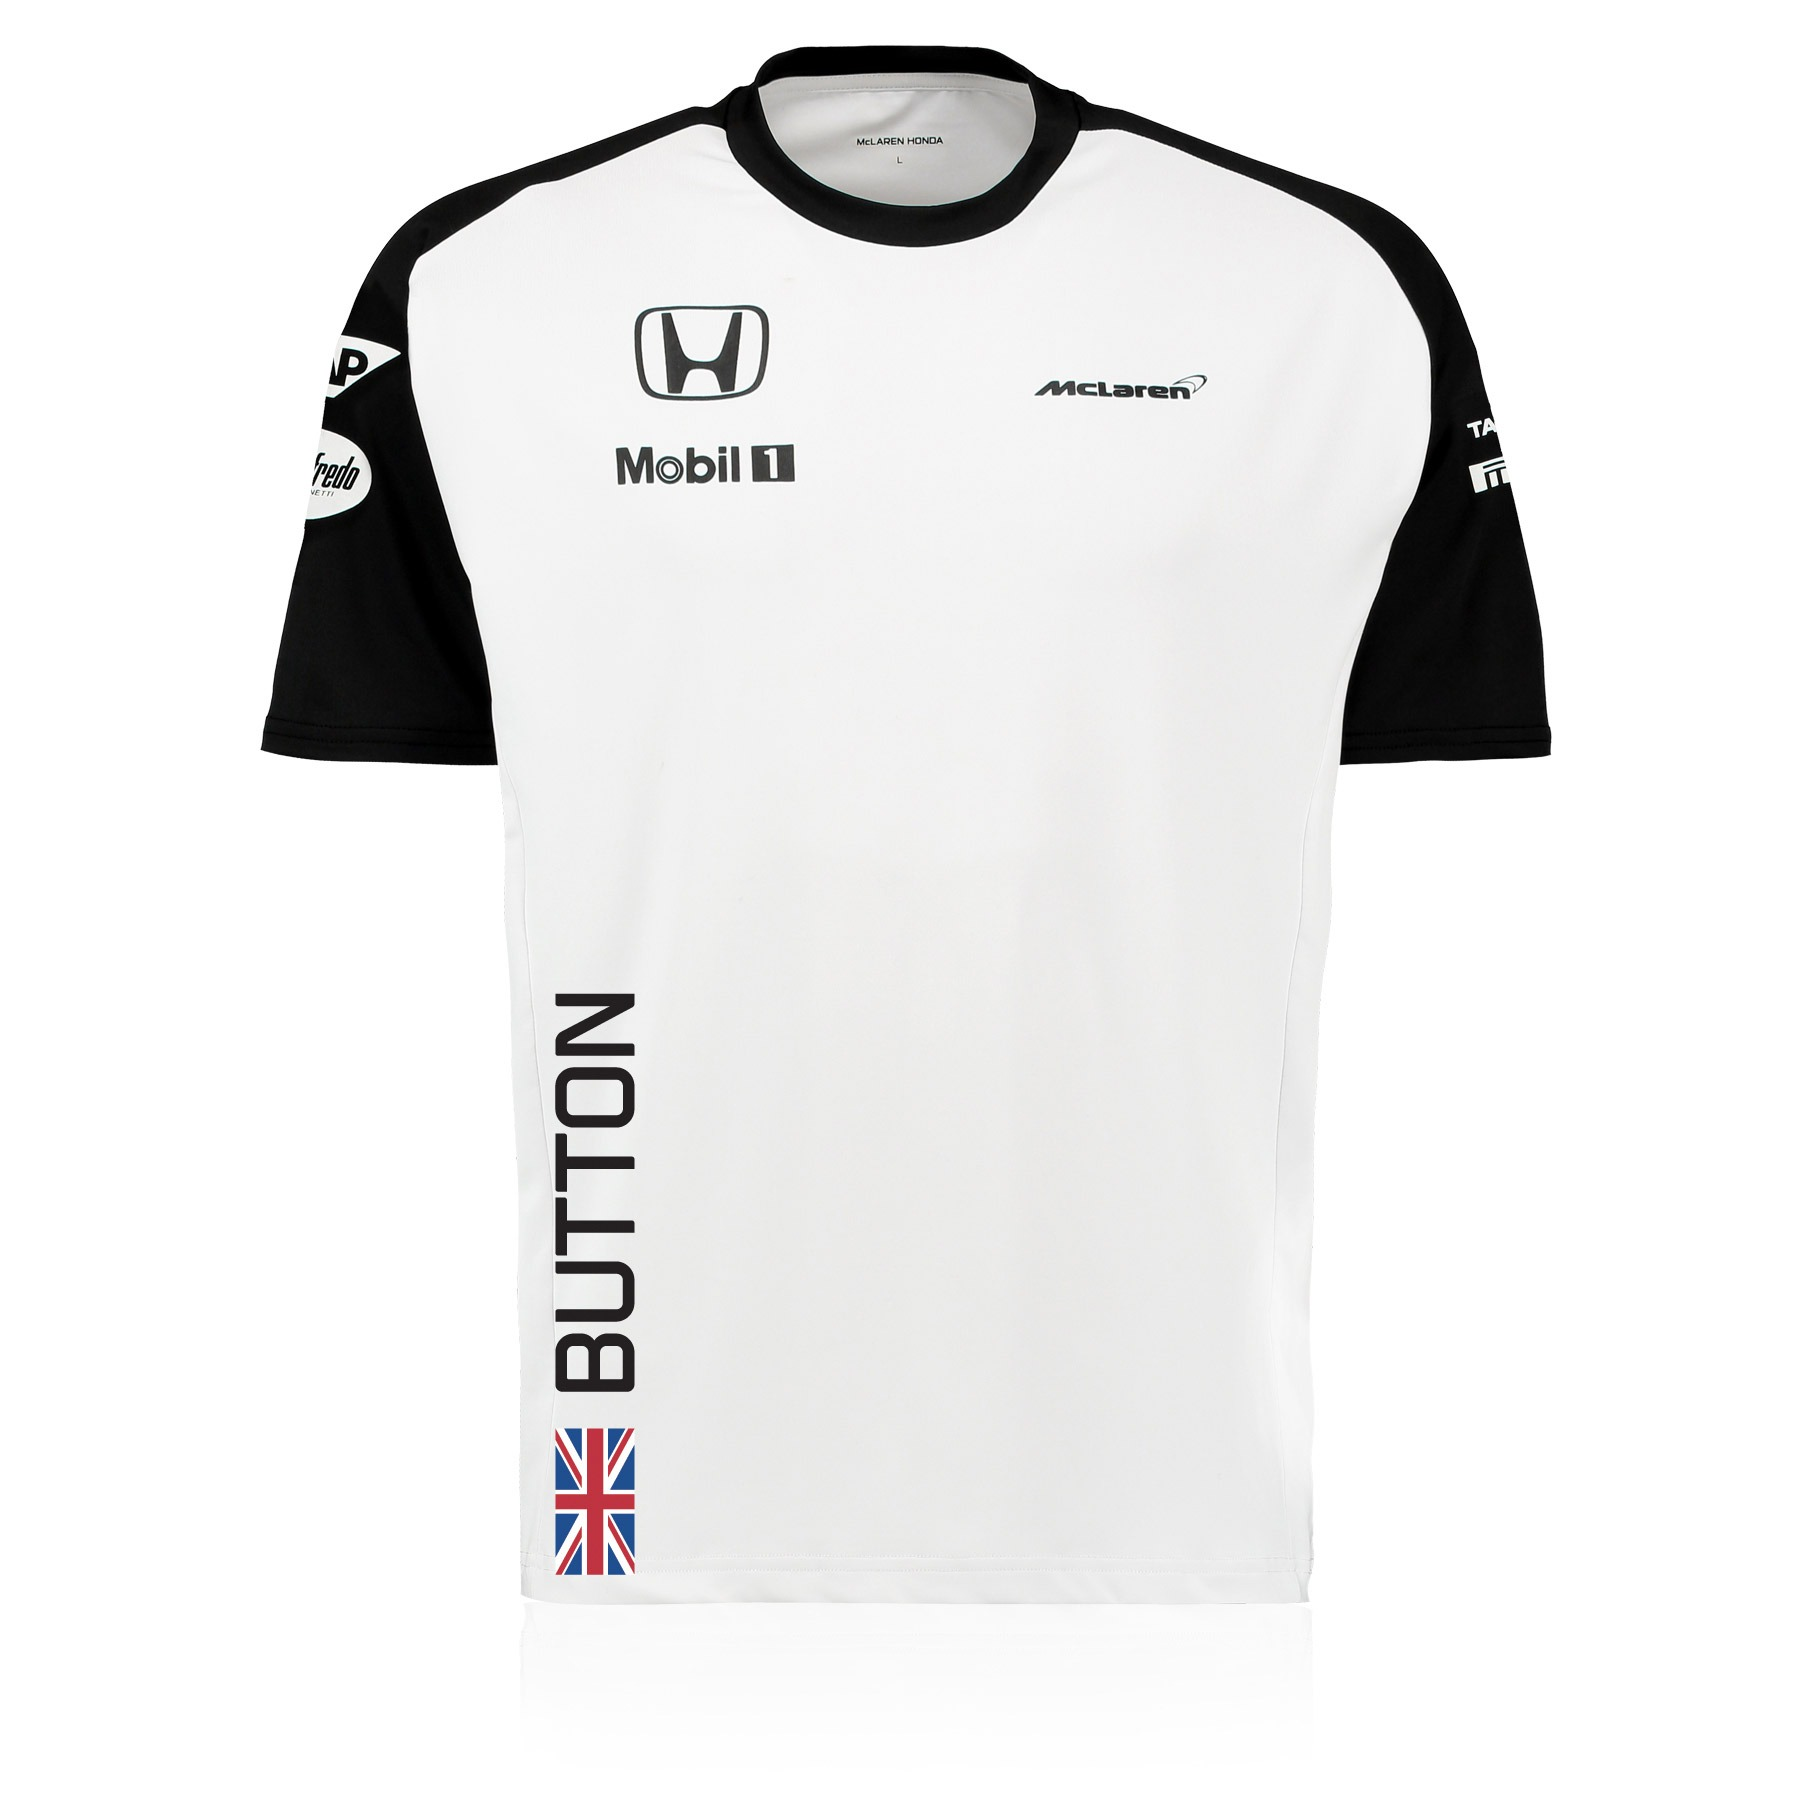 Button F1 shirt